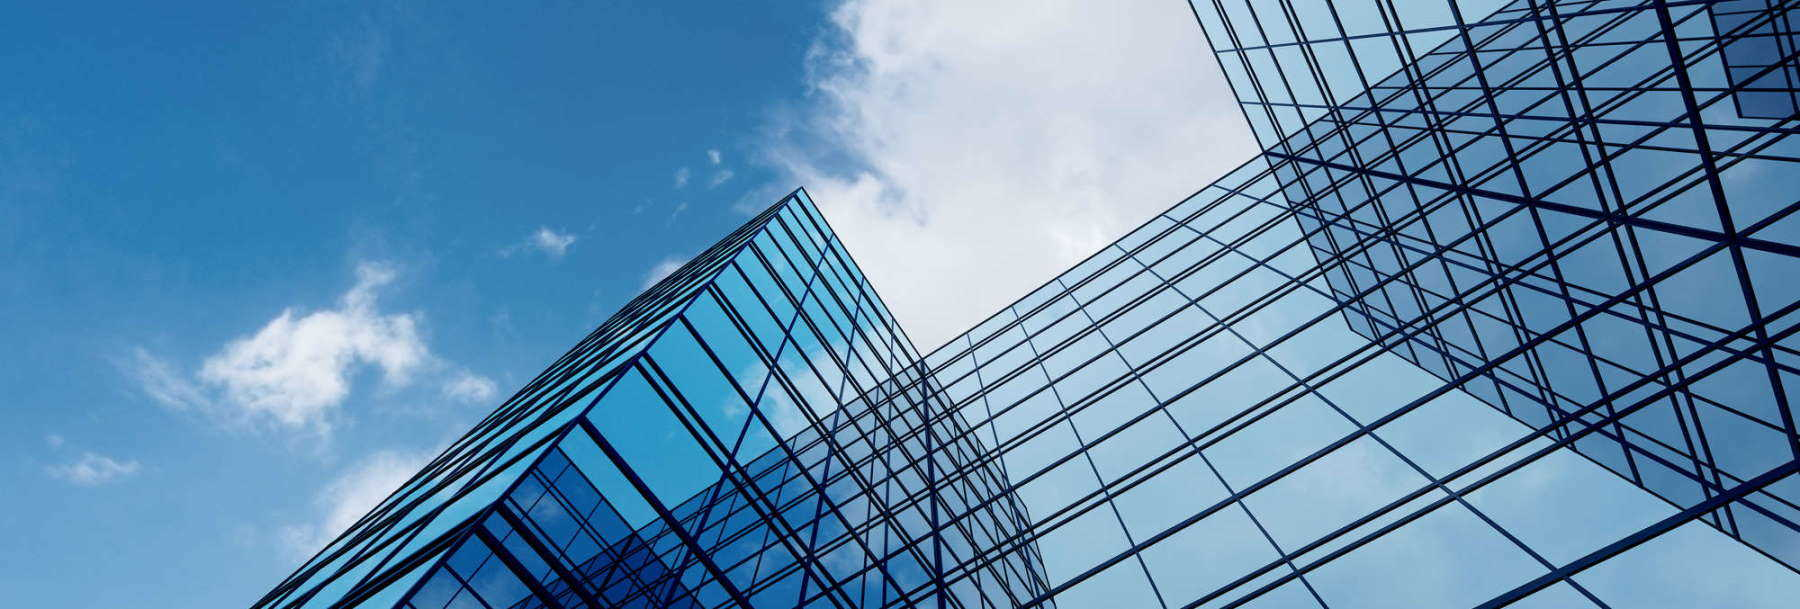 commercial window cleaning services in New York